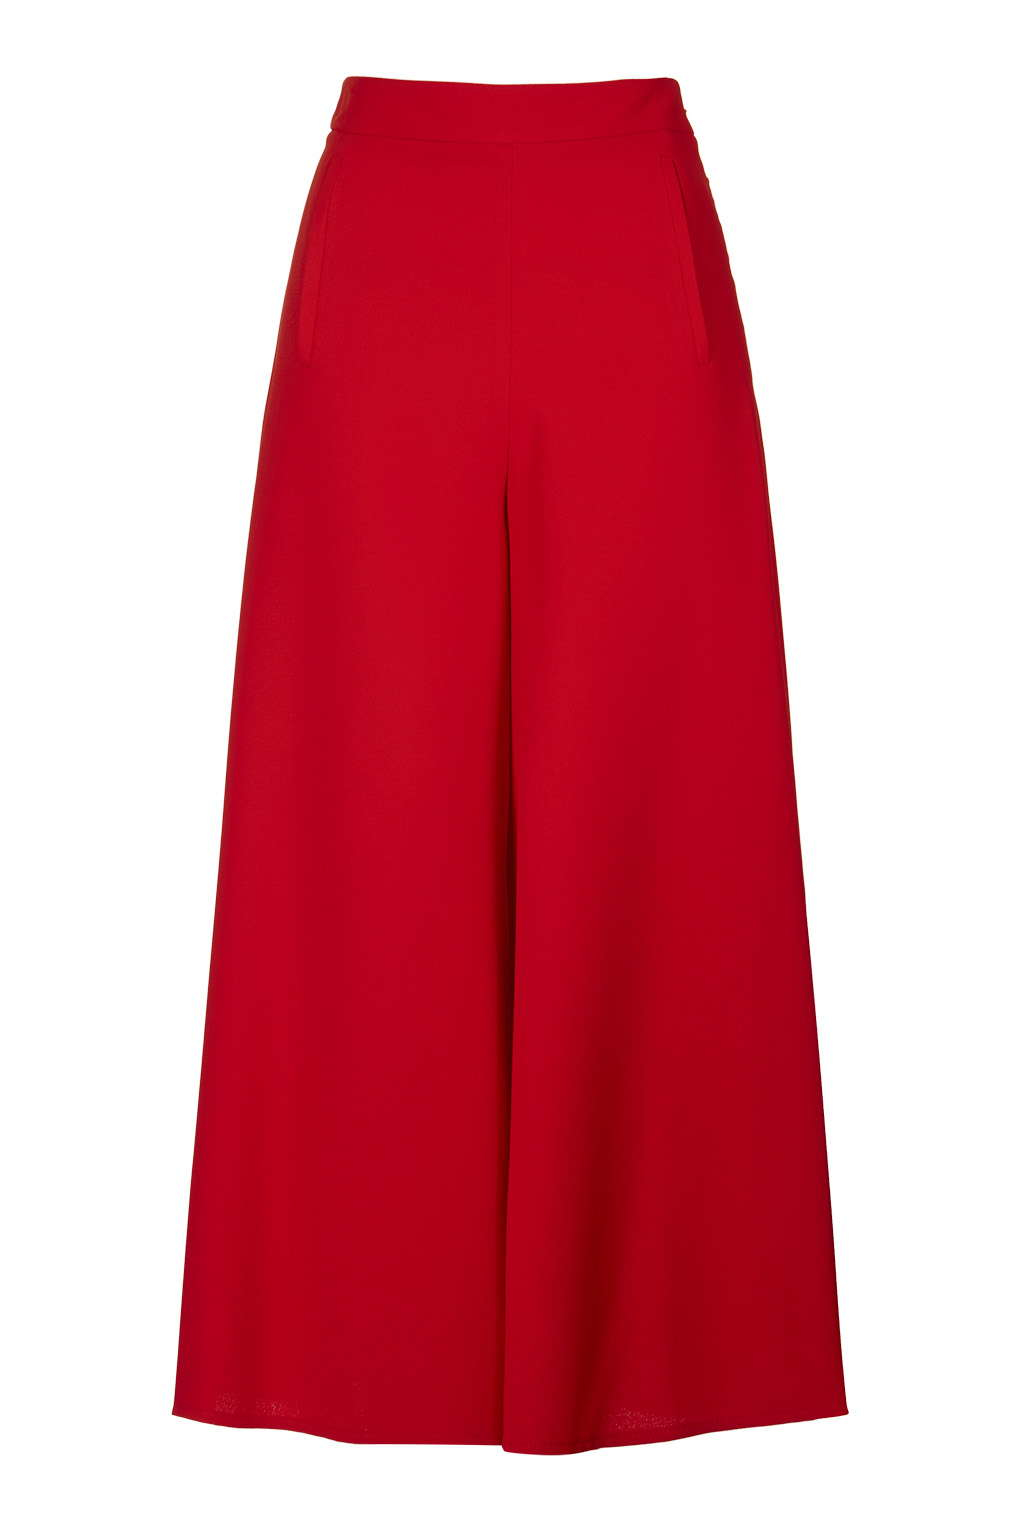 Topshop Wide Leg Palazzo Trousers in Red | Lyst